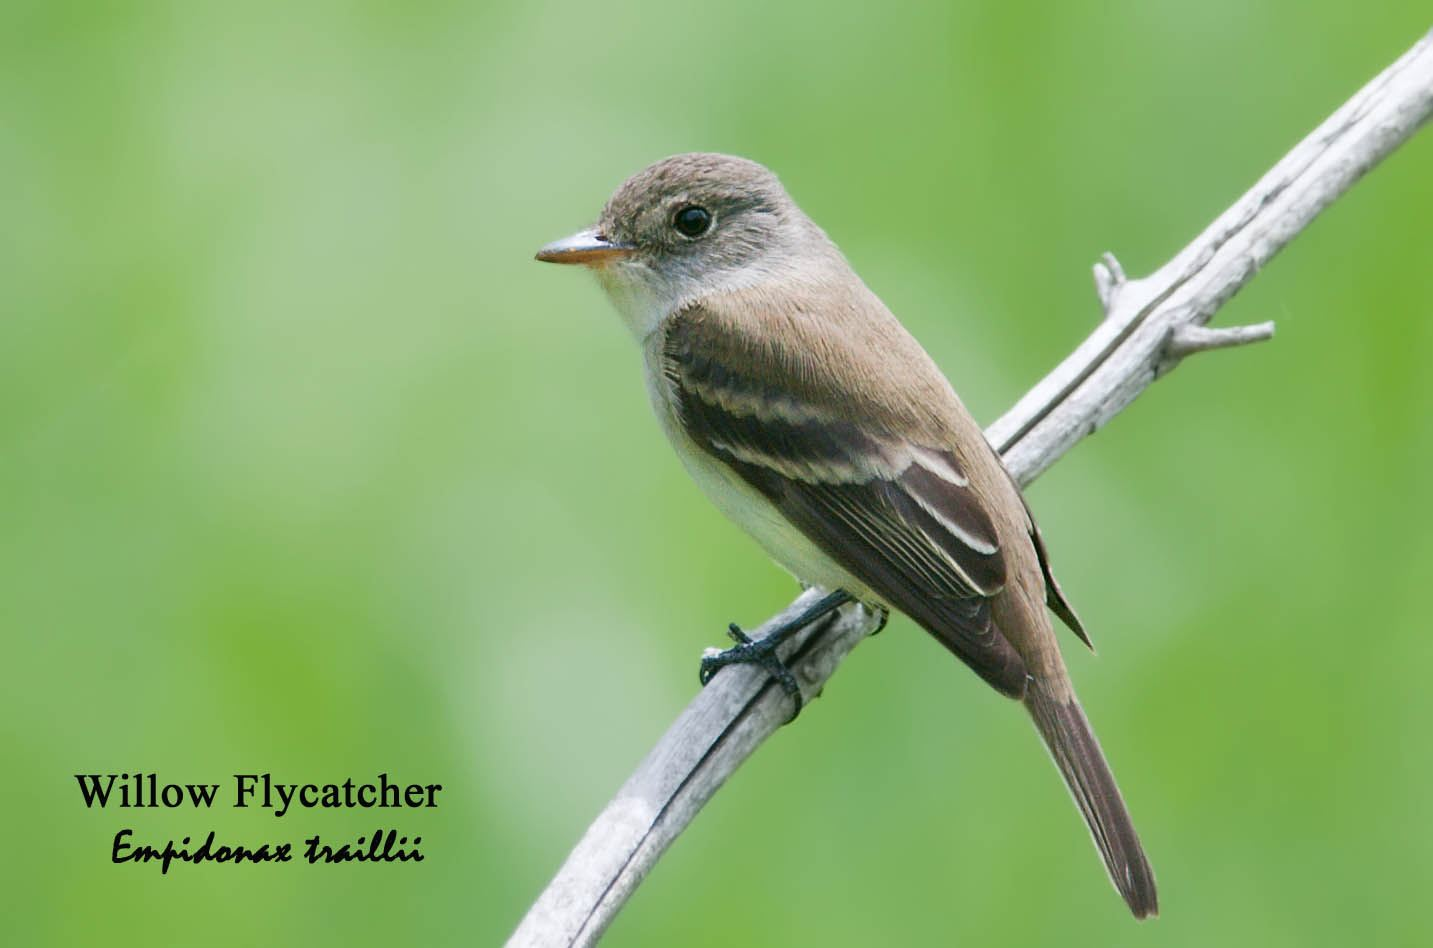 Willow Flycatcher - 1